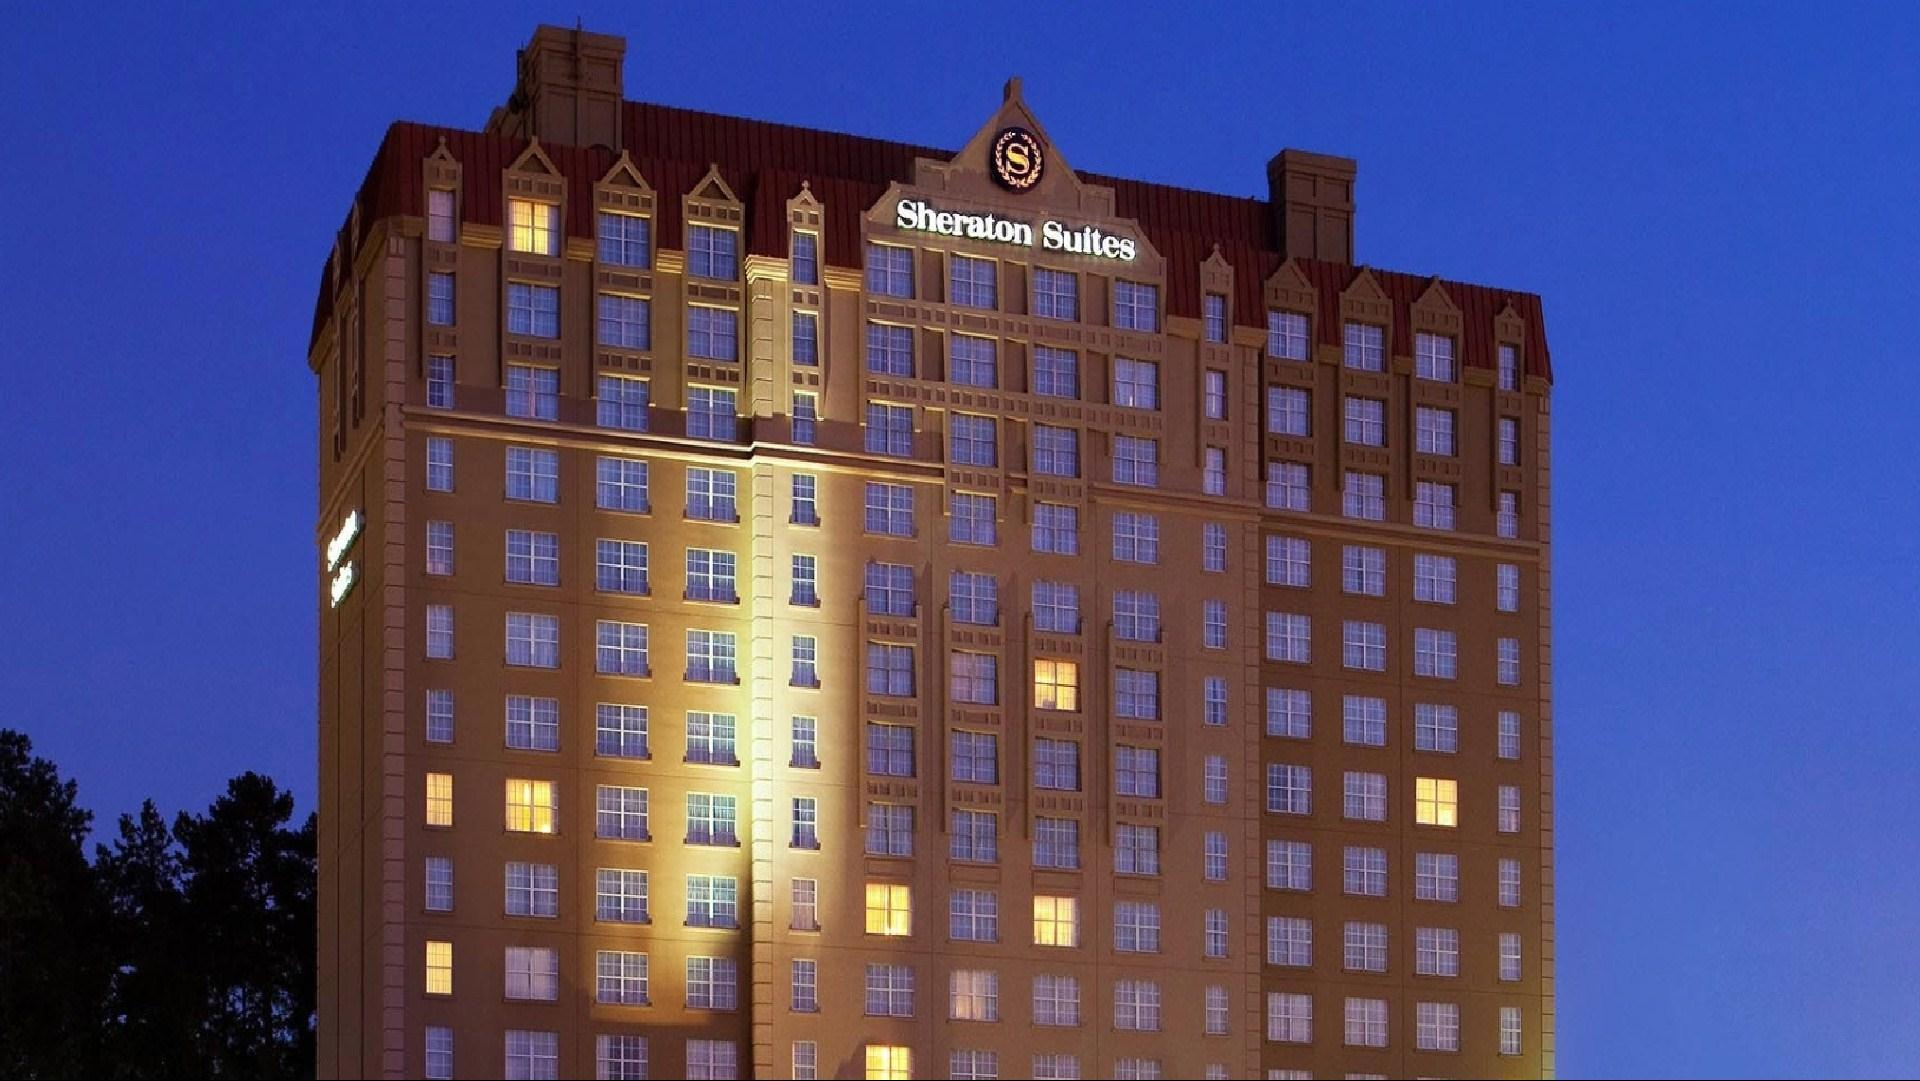 Sheraton Suites Galleria Atlanta Meetings and Events at